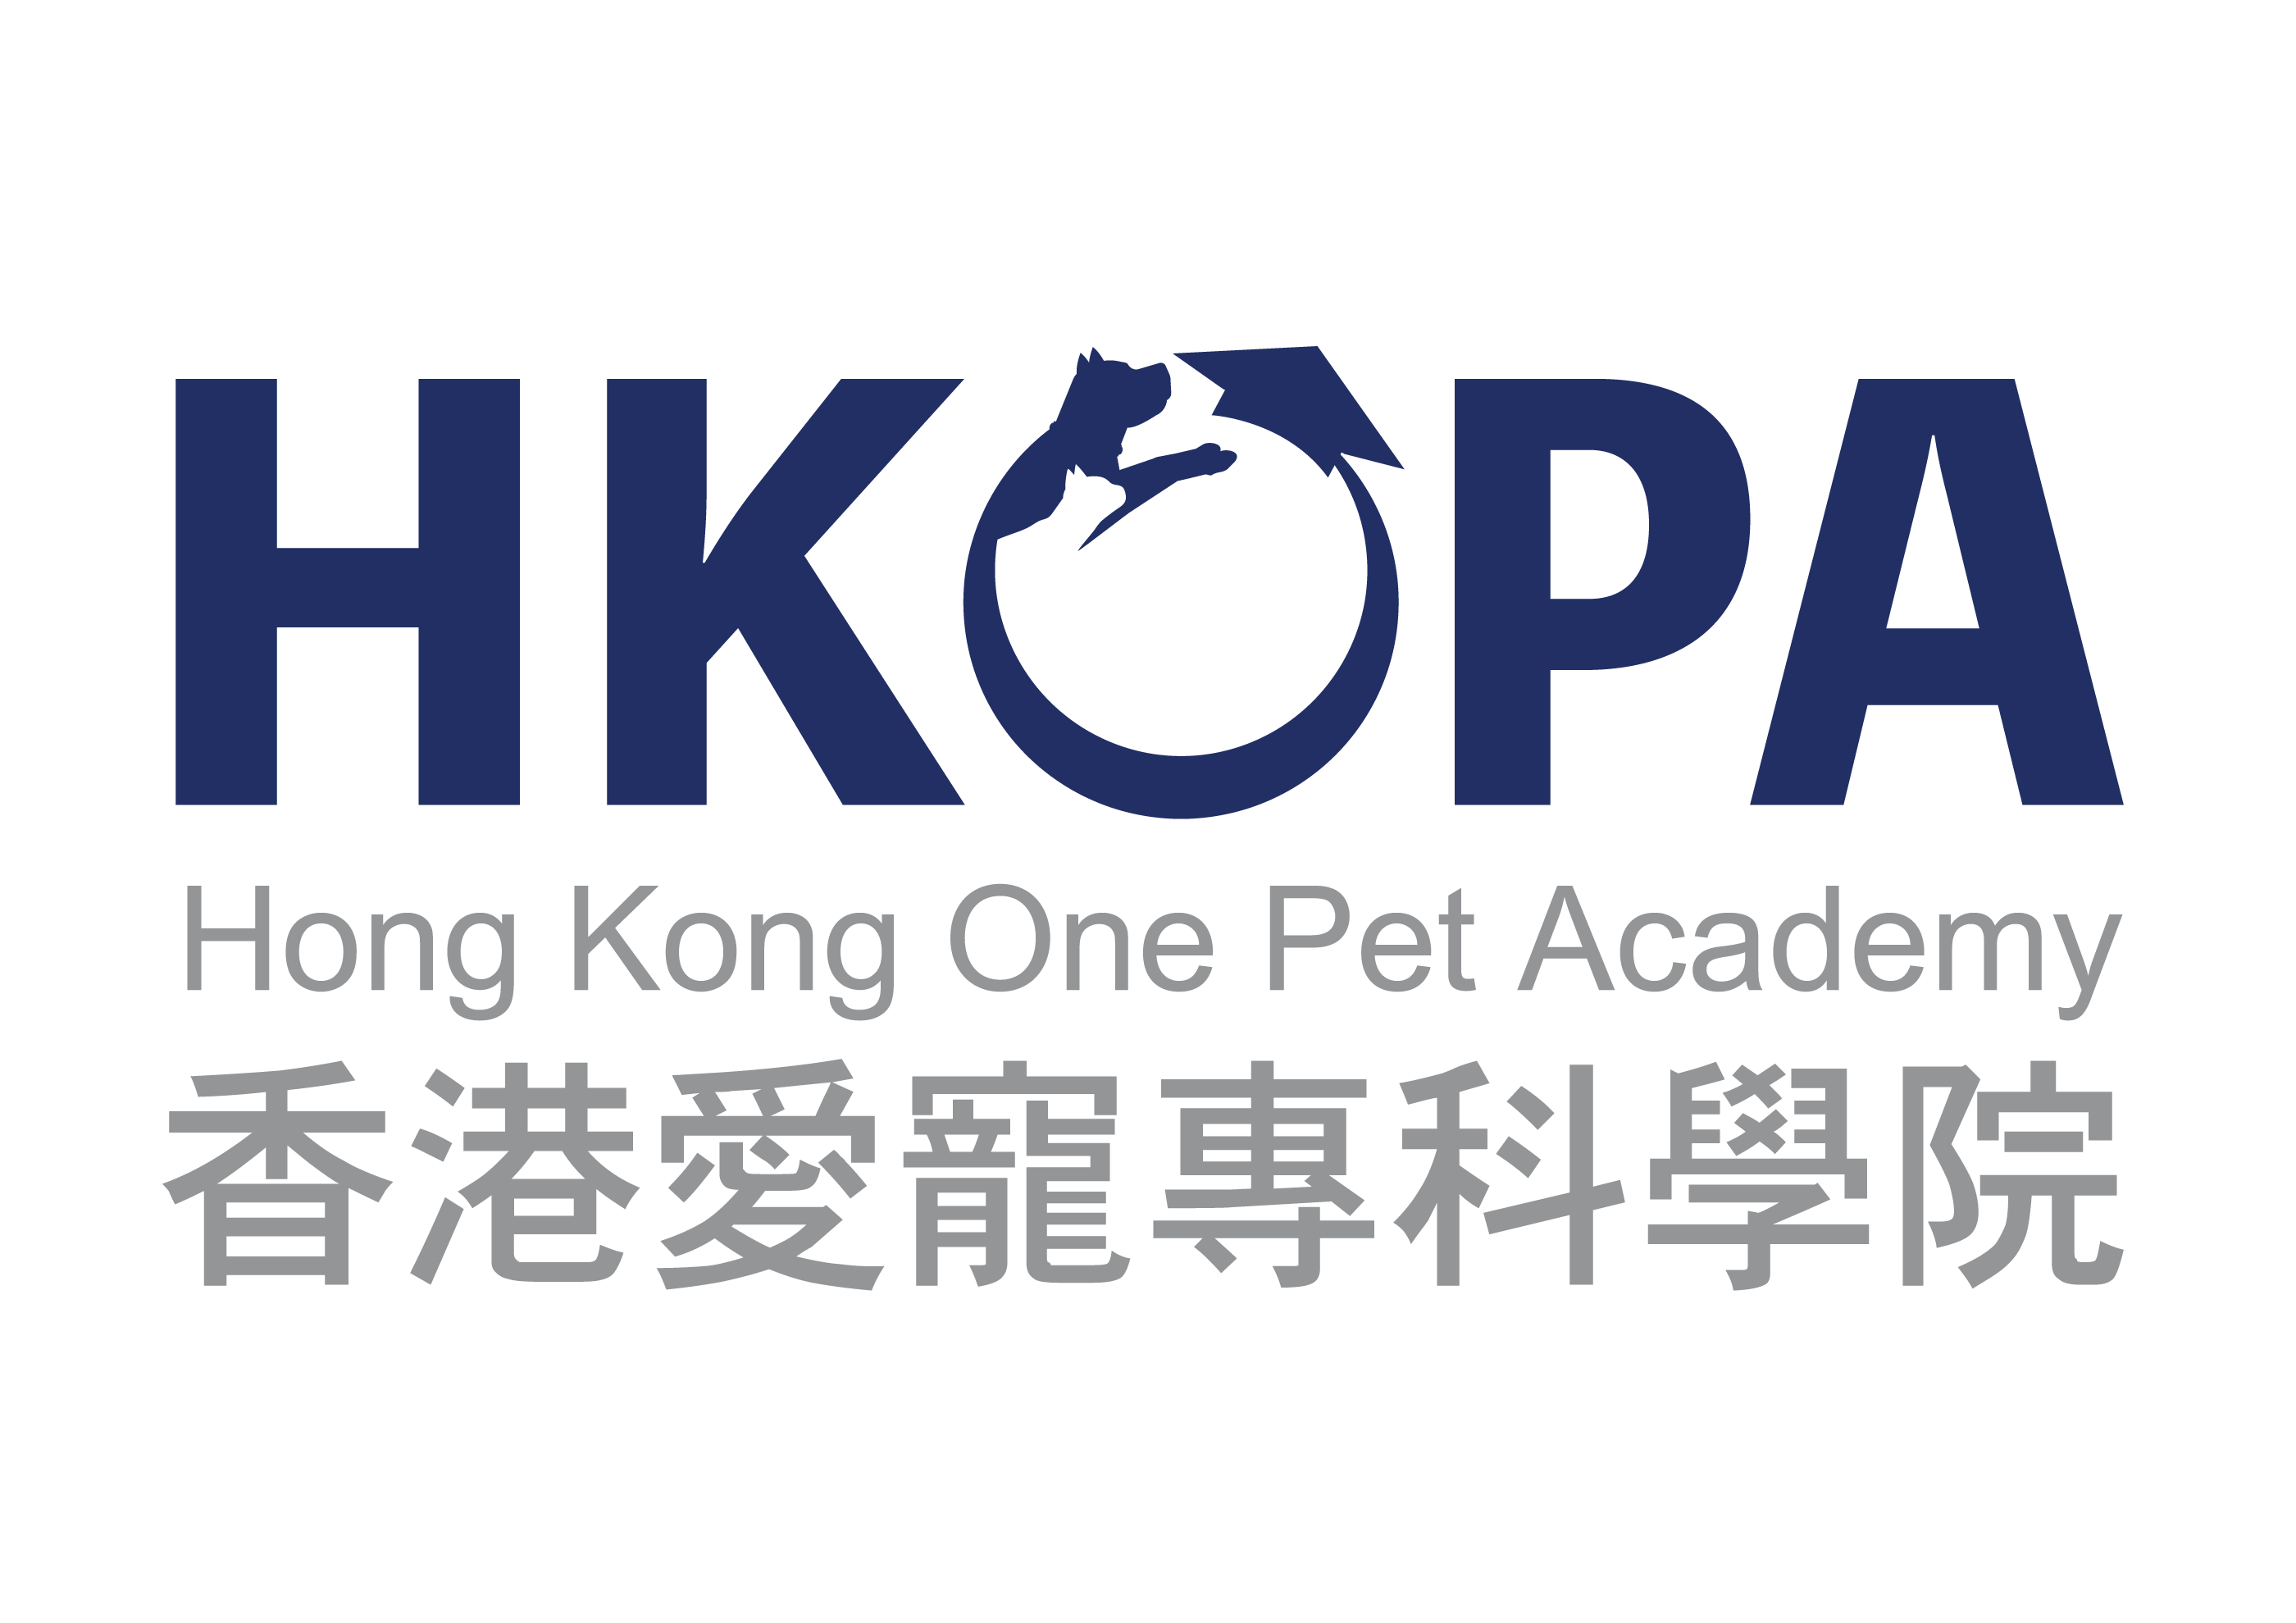 香港愛寵專科學院 Hong Kong One Pet Academy